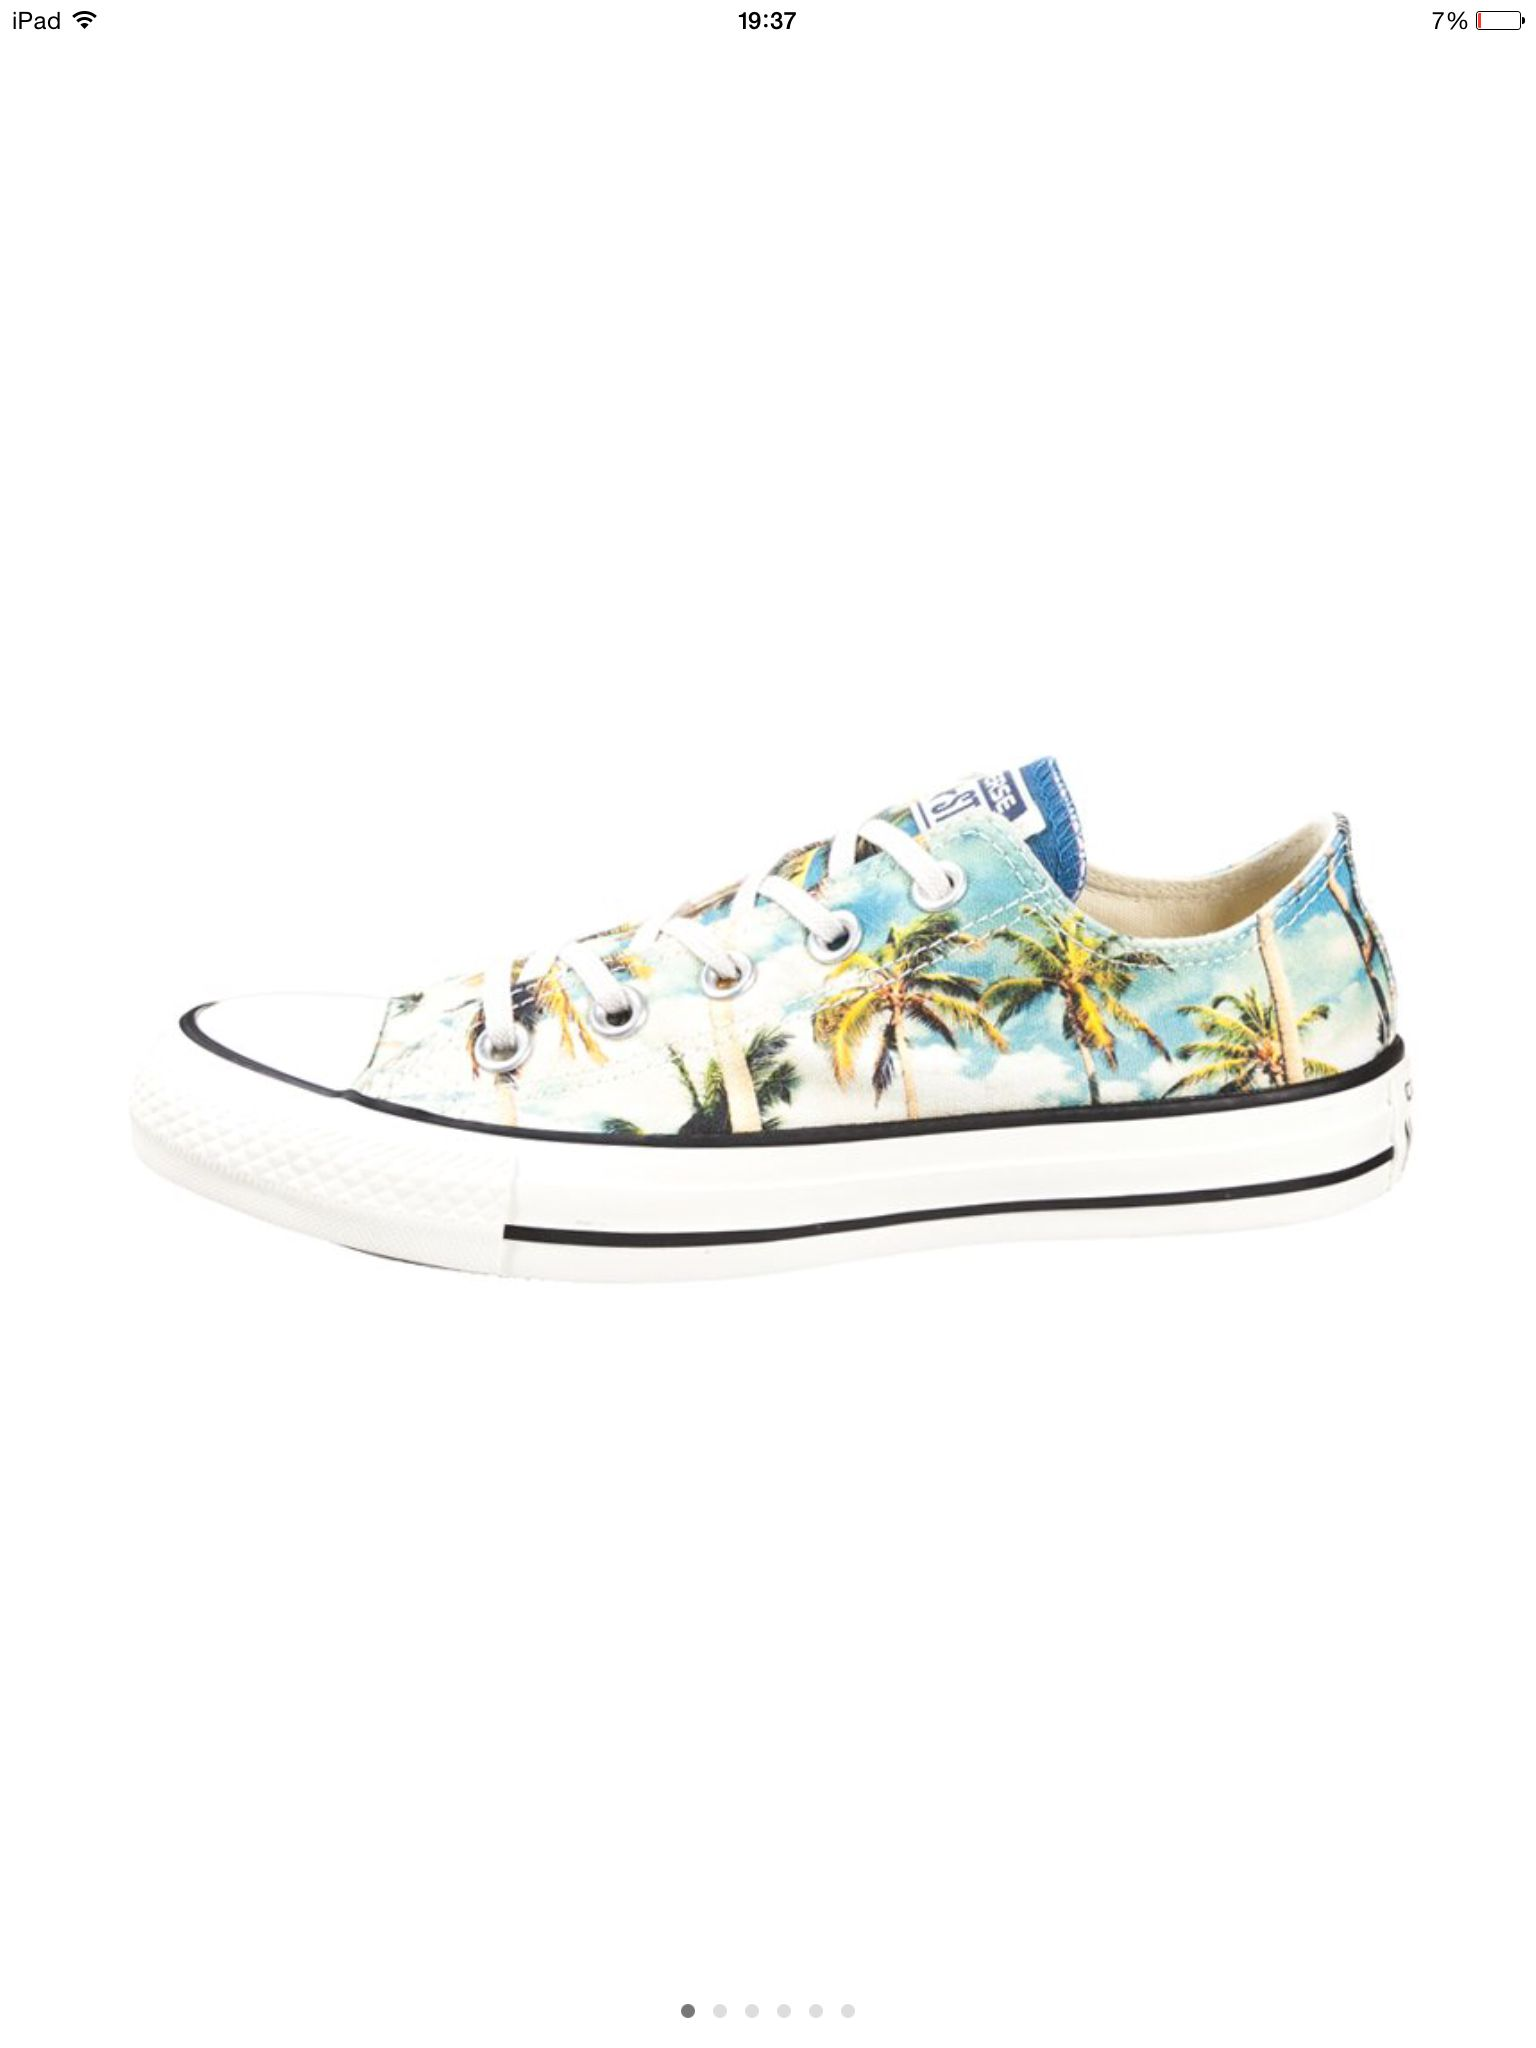 216416bd96c Converse All Star Chuck Tailor Palm Trees Summer Shoes